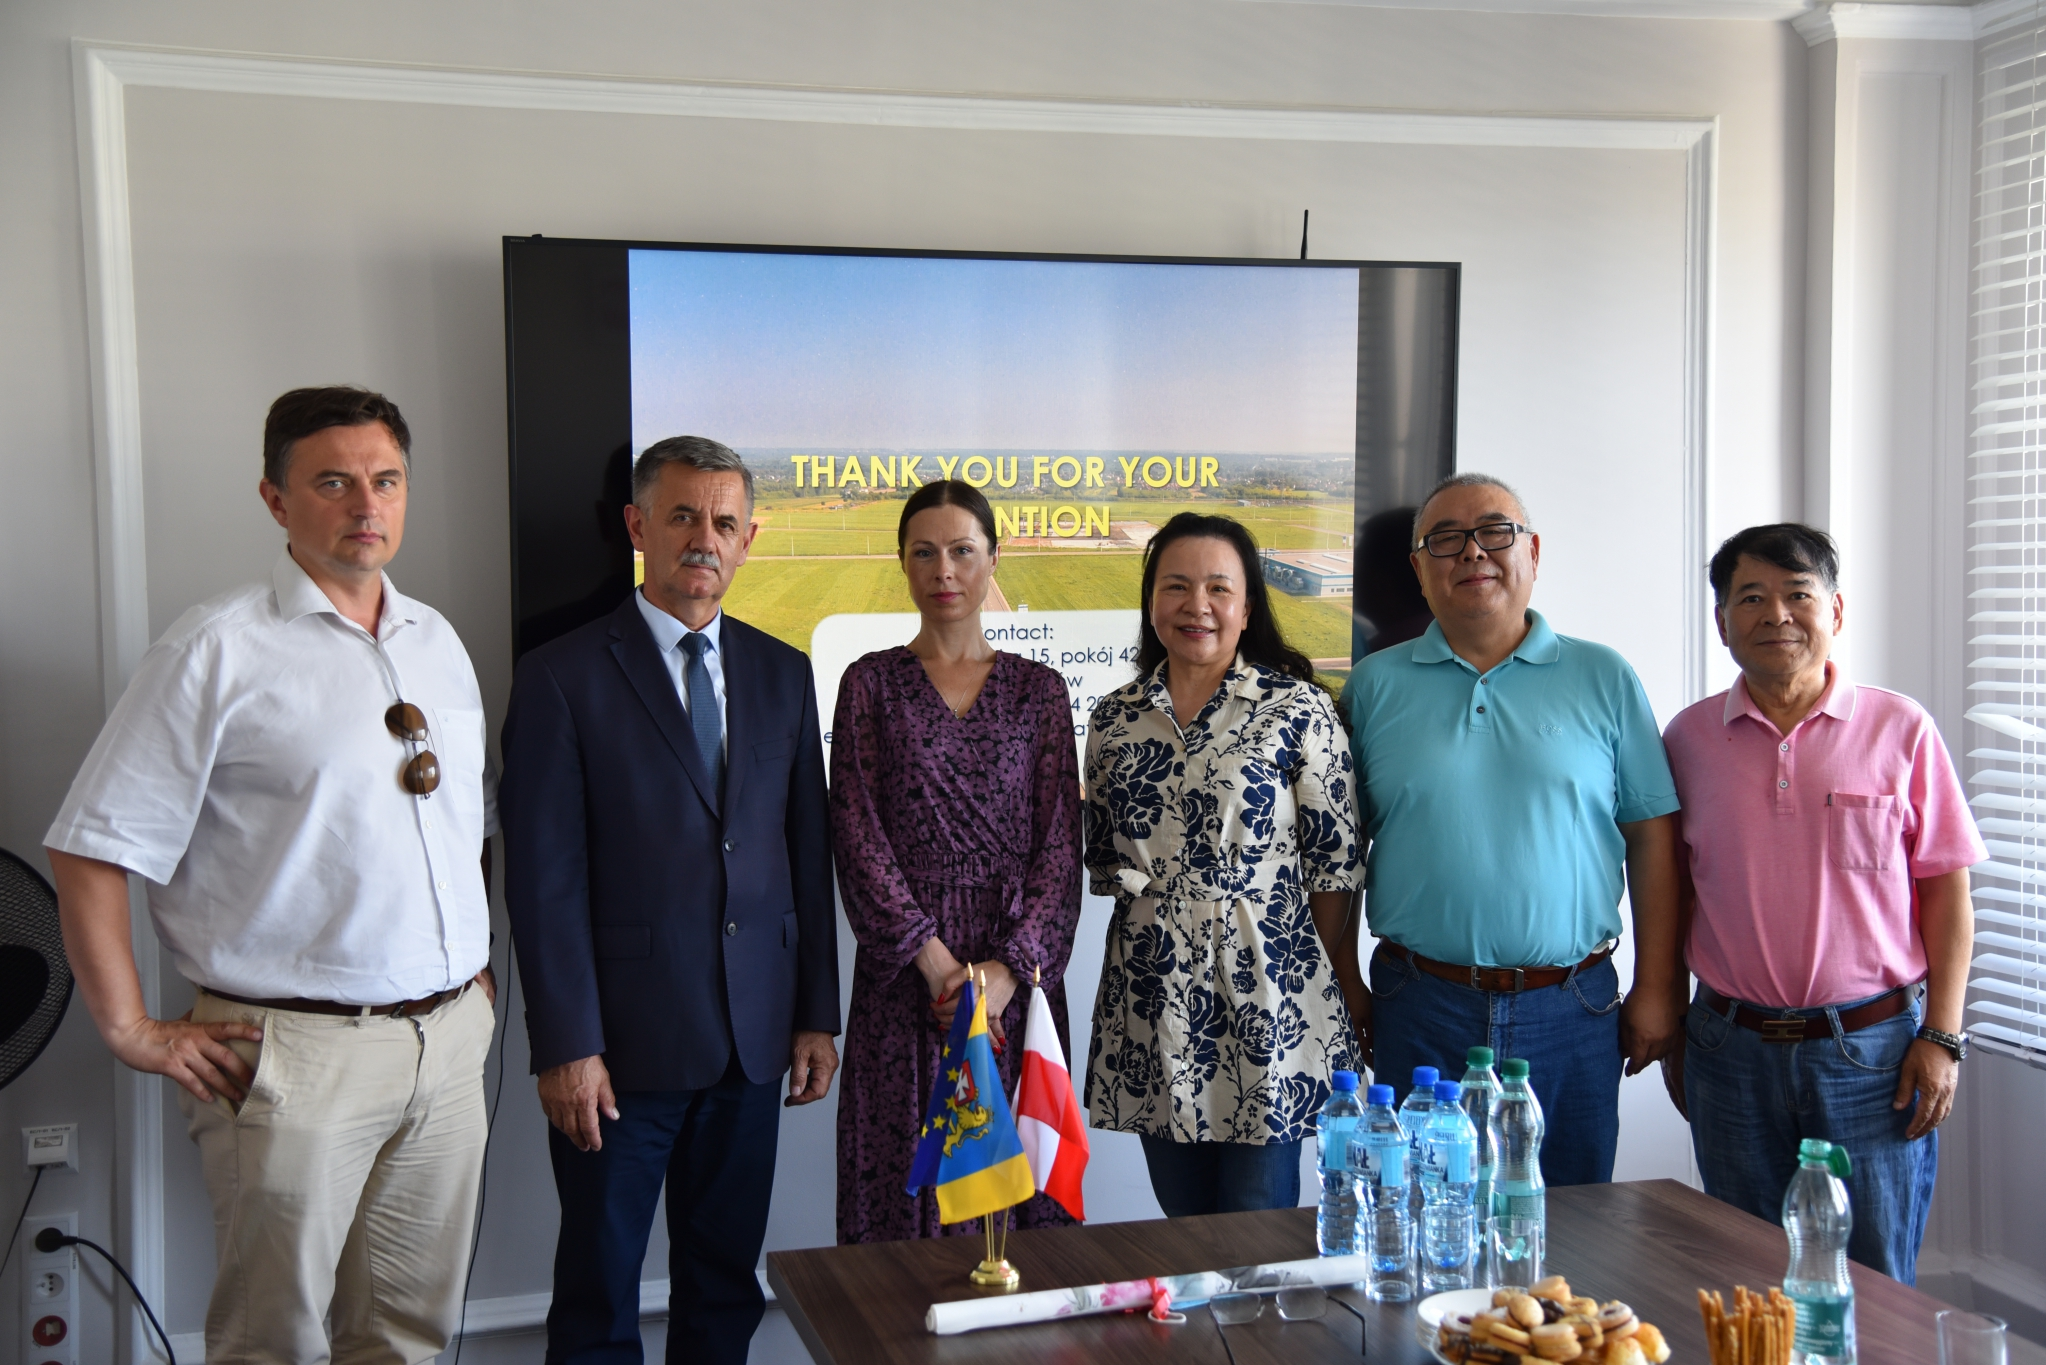 Delegation from China in the Rzeszów poviat